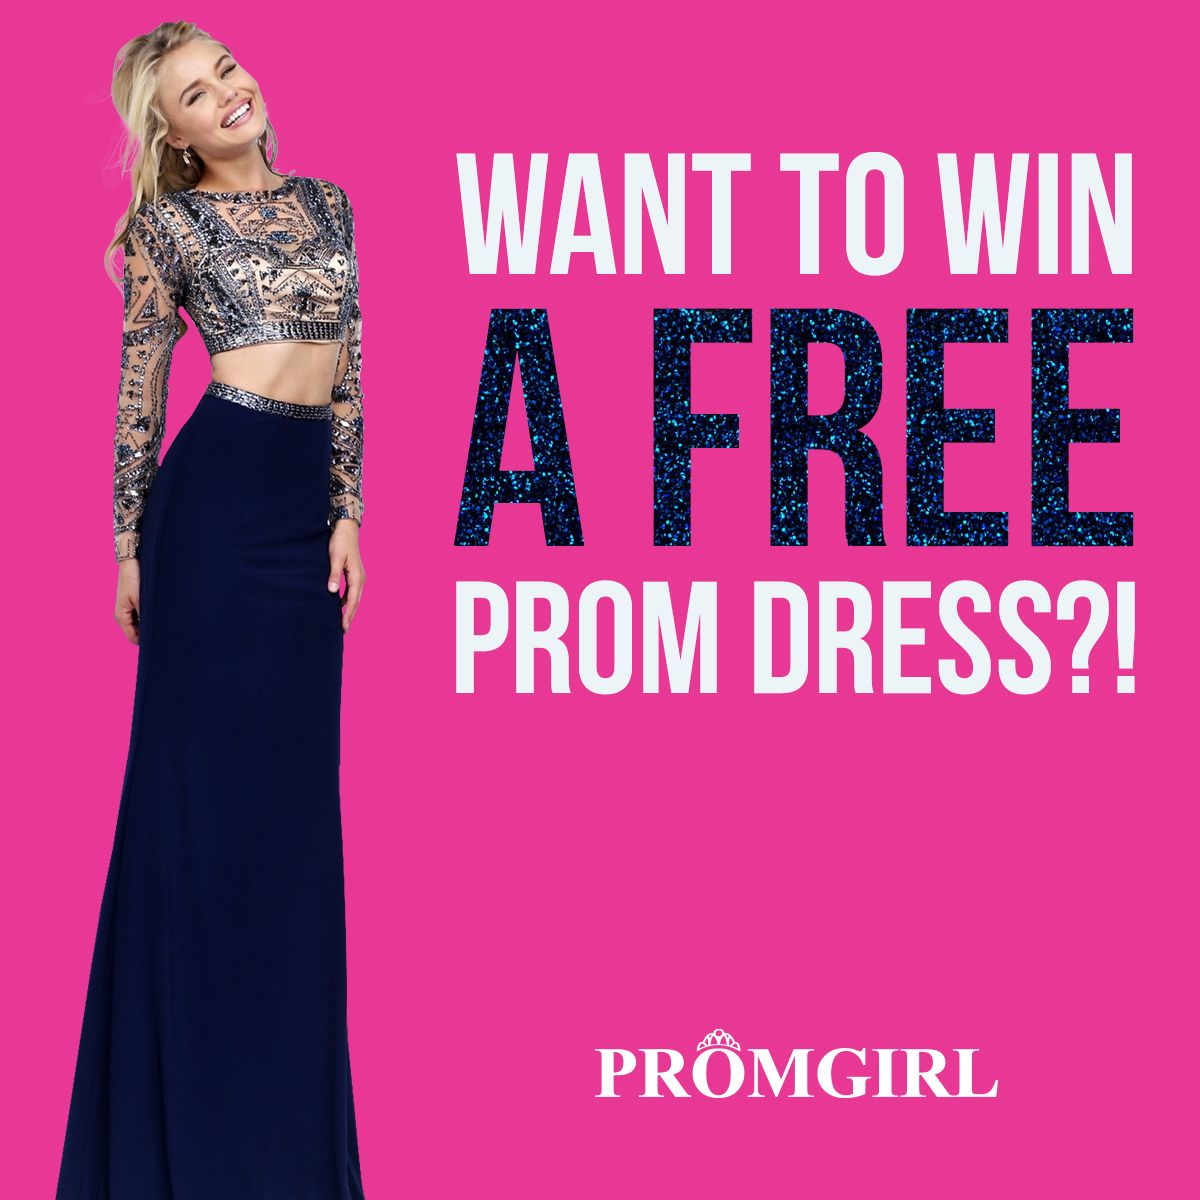 Just Take Our Prom 2016 Quiz For A Chance To Win A FREE Prom Dress ...